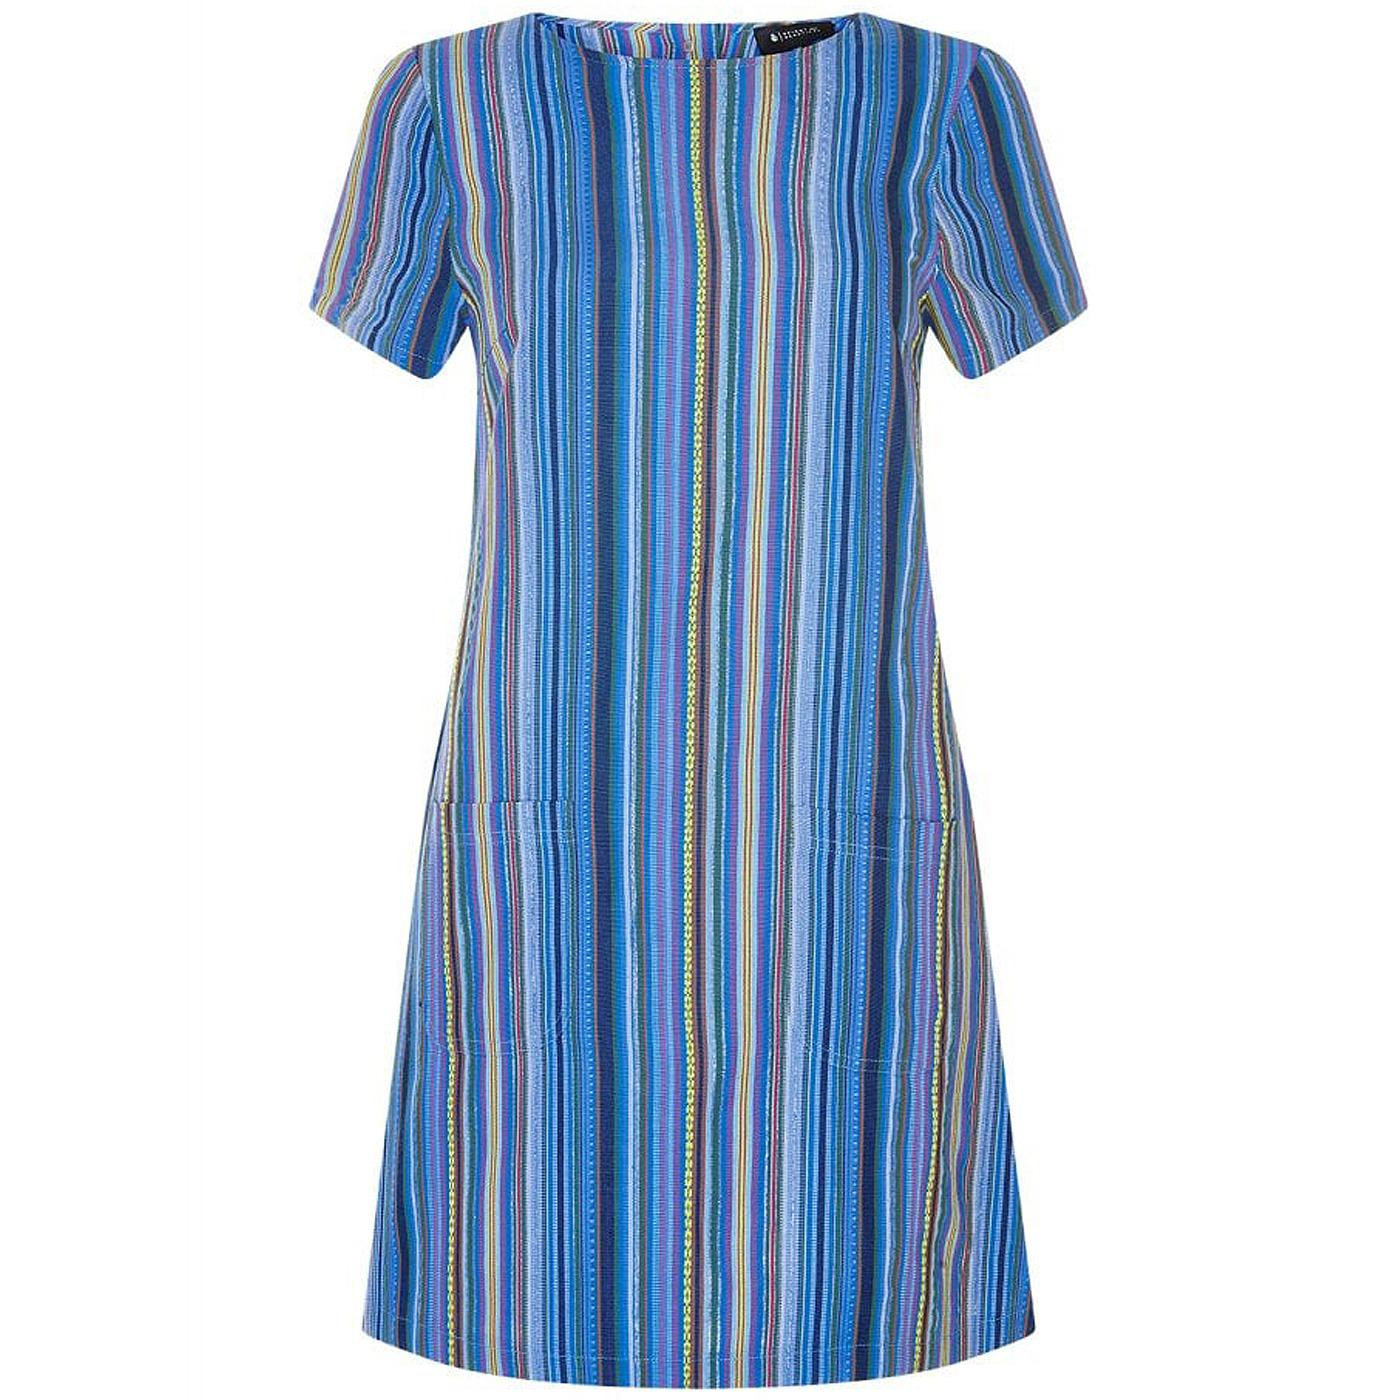 Ella BRIGHT & BEAUTIFUL Retro 60s Mod Stripe Dress